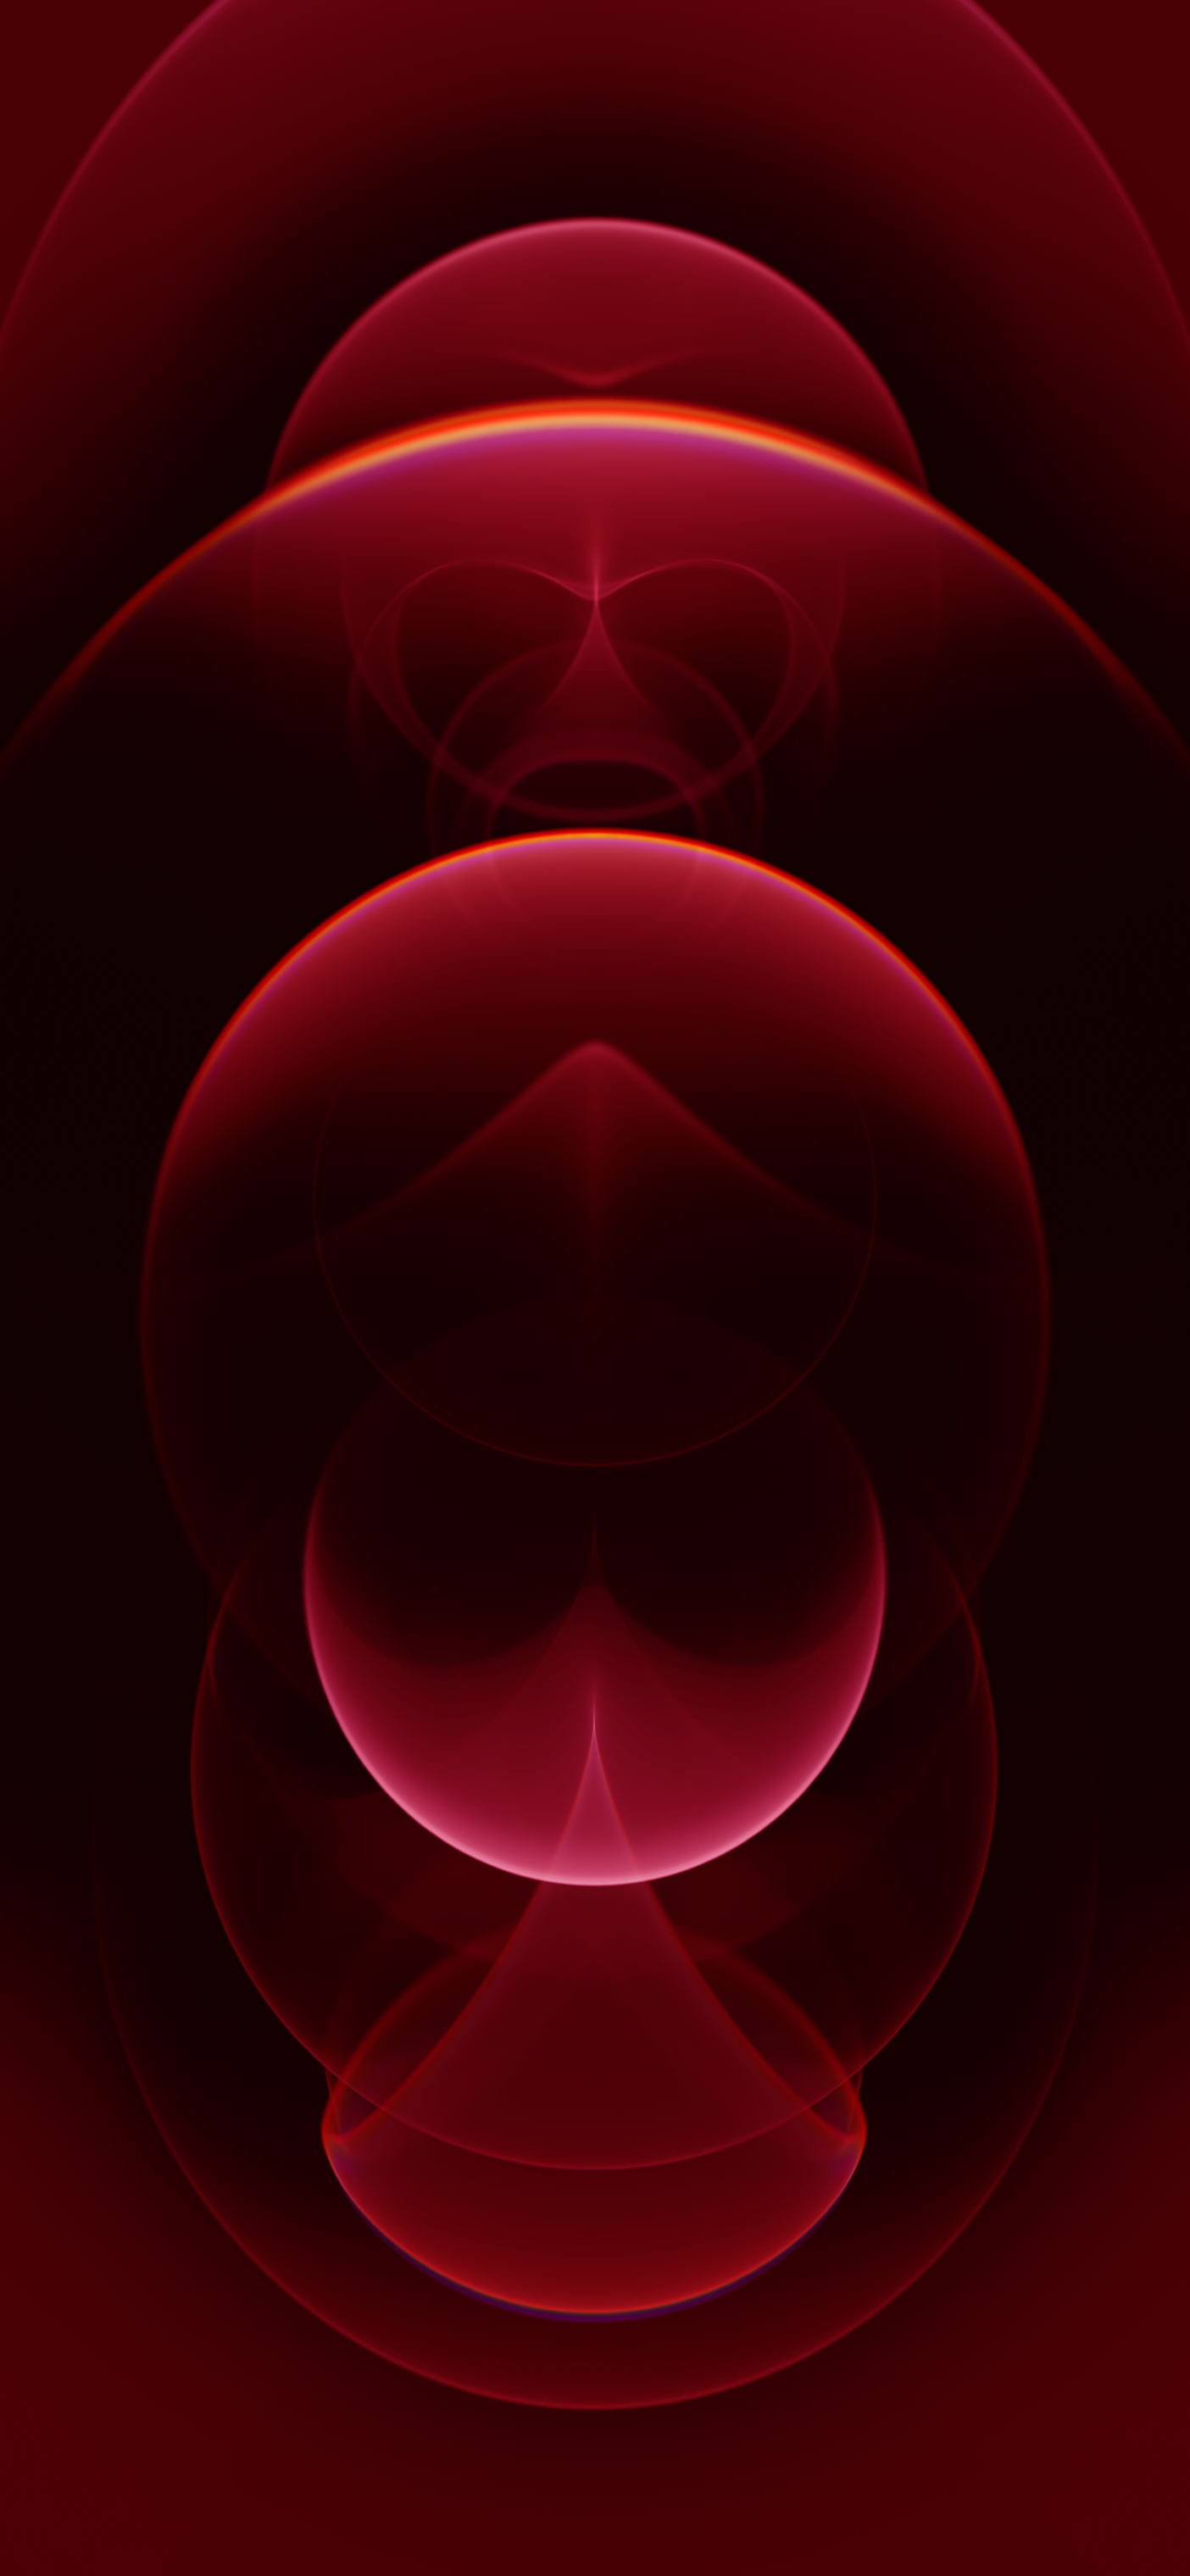 Iphone 12 Pro Max Wallpaper Iphone Red Wallpaper Apple Wallpaper Iphone Marvel Iphone Wallpaper